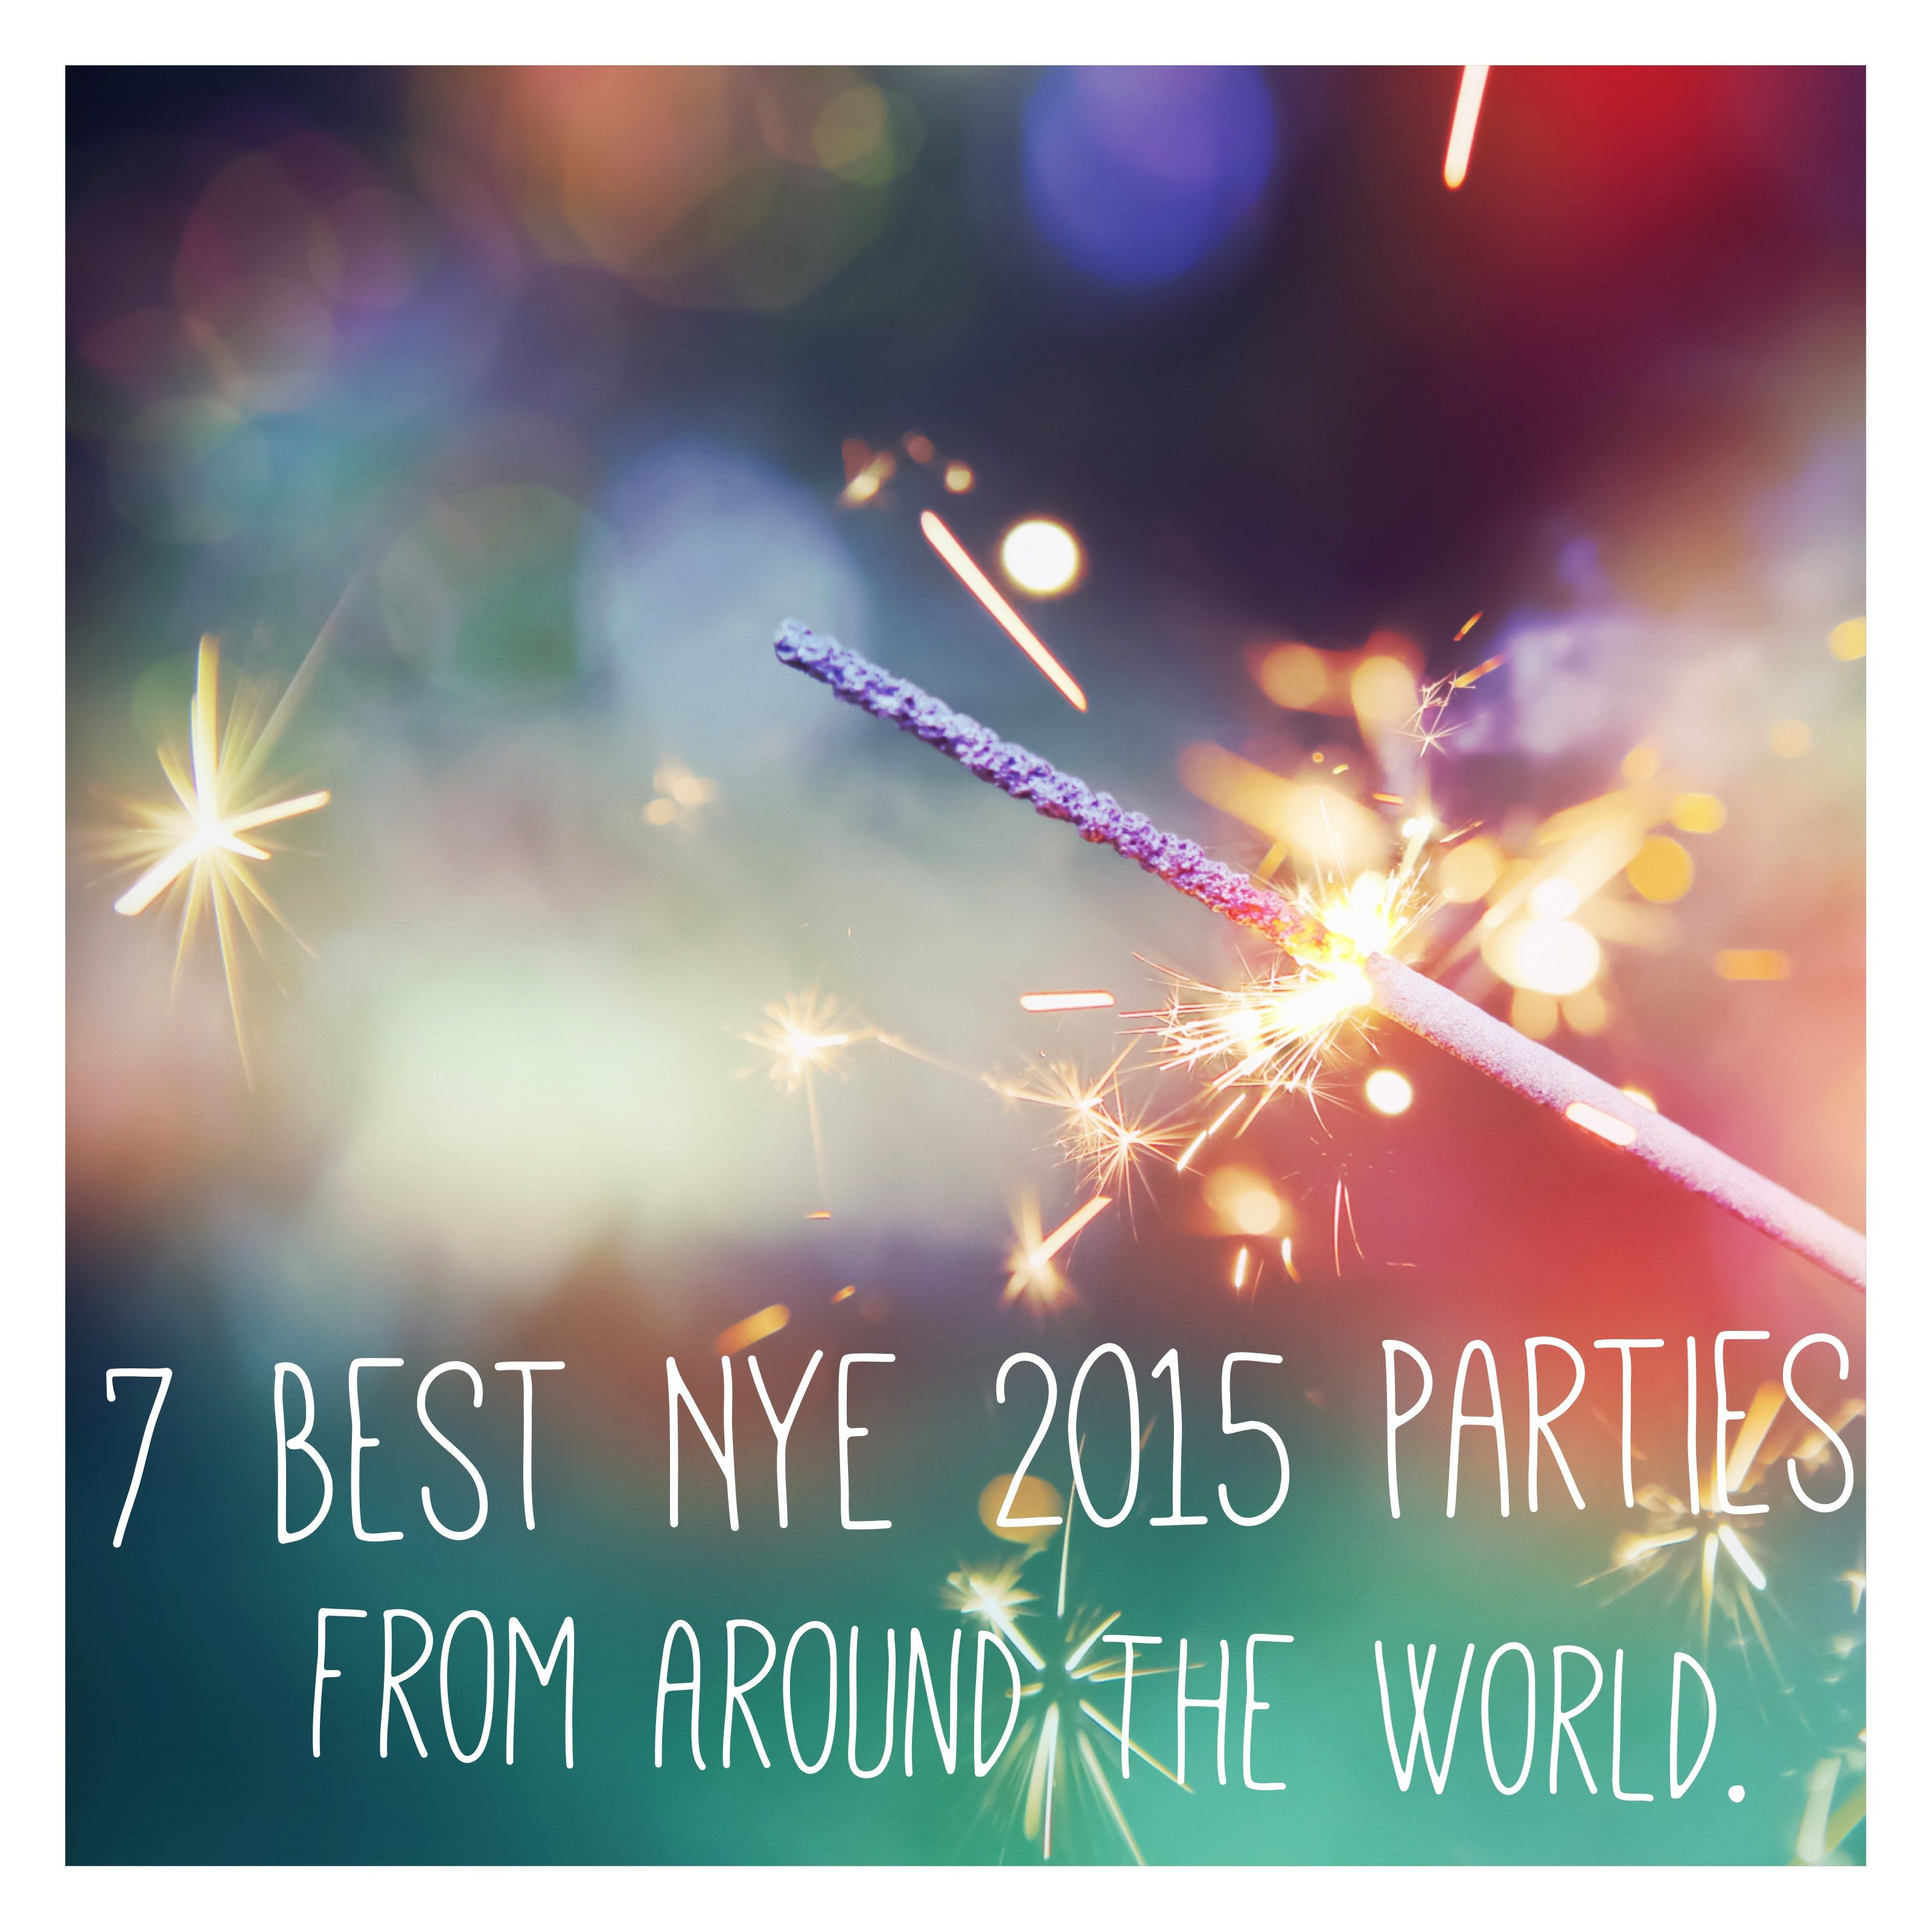 7 Best NYE 2015 Parties from Around the World Party